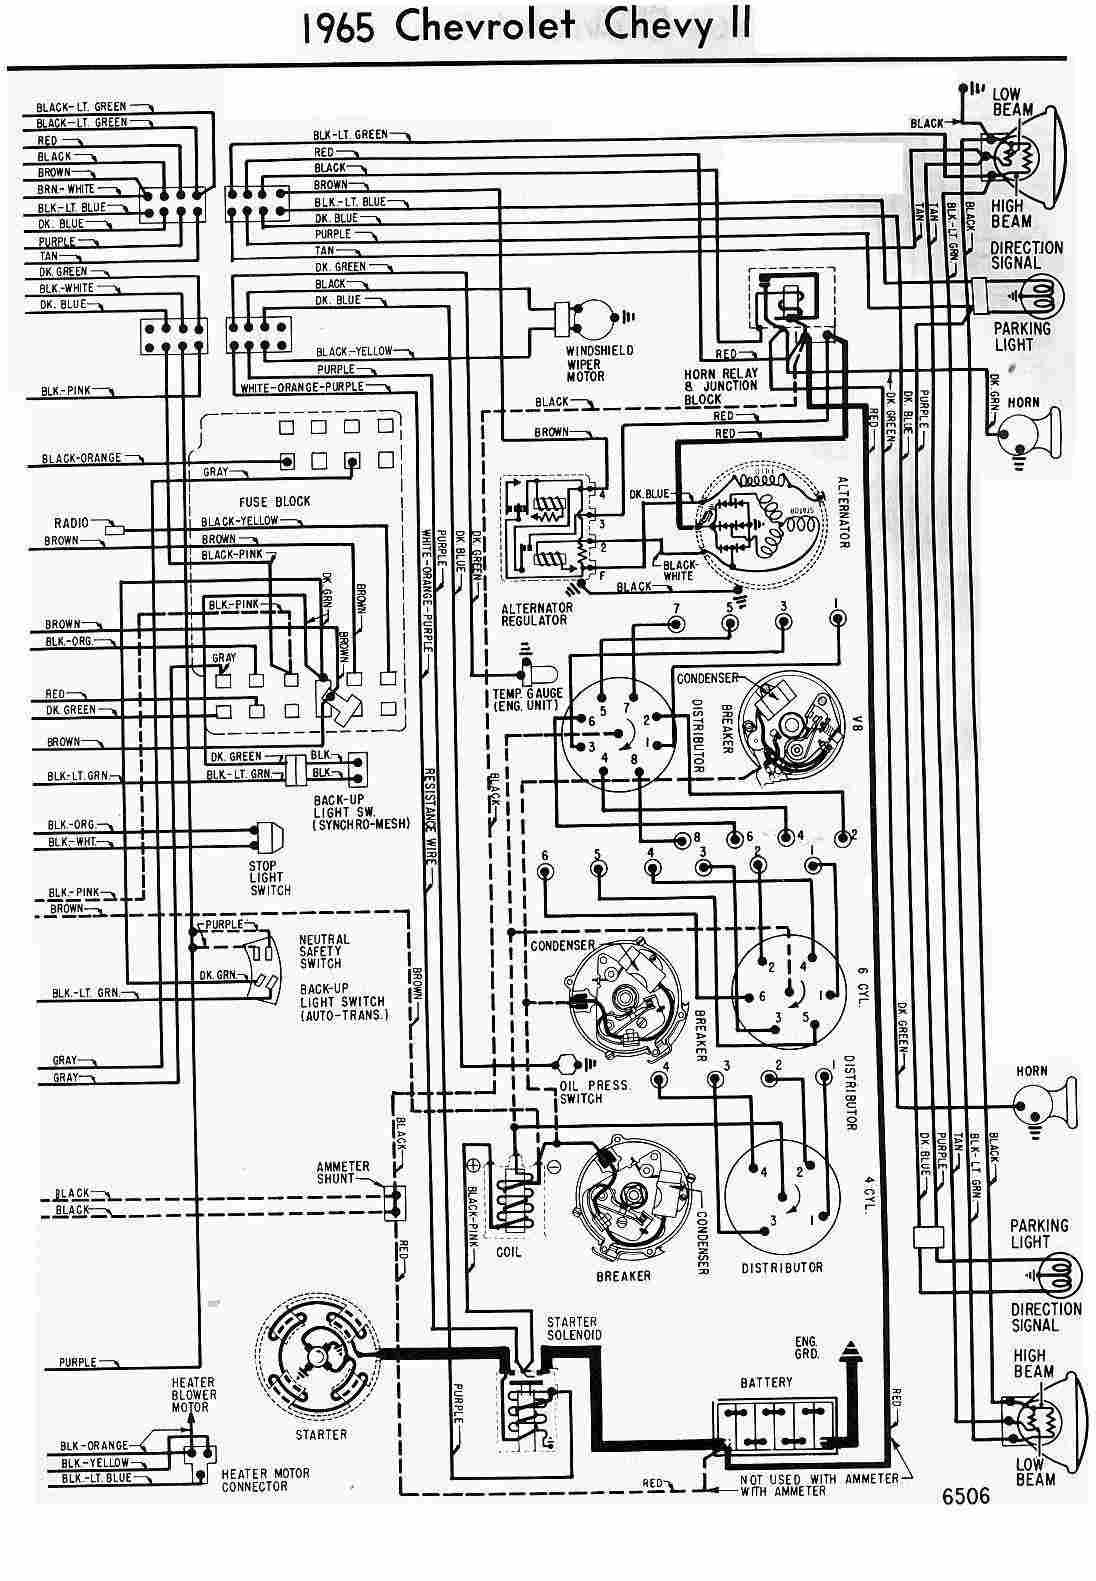 Wiring Diagram For 1968 Impala List Of Schematic Circuit Chevy 68 Turn Signal Trusted Rh Dafpods Co